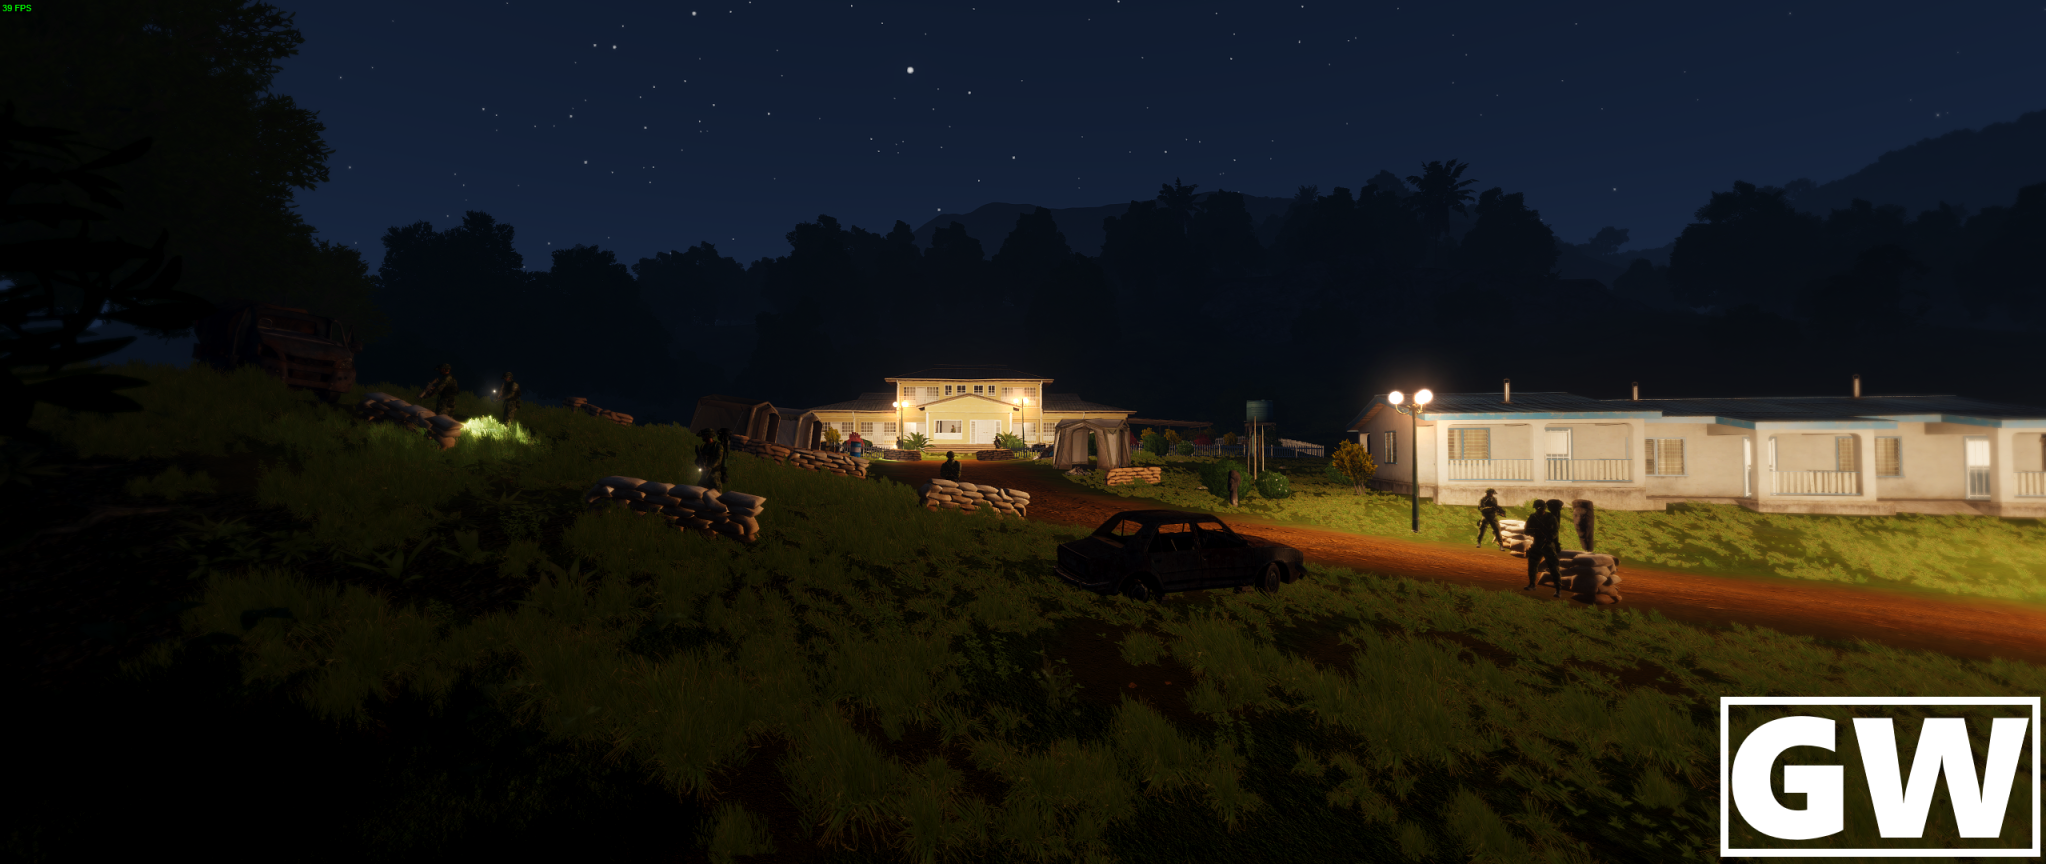 Arma 3 front page 1